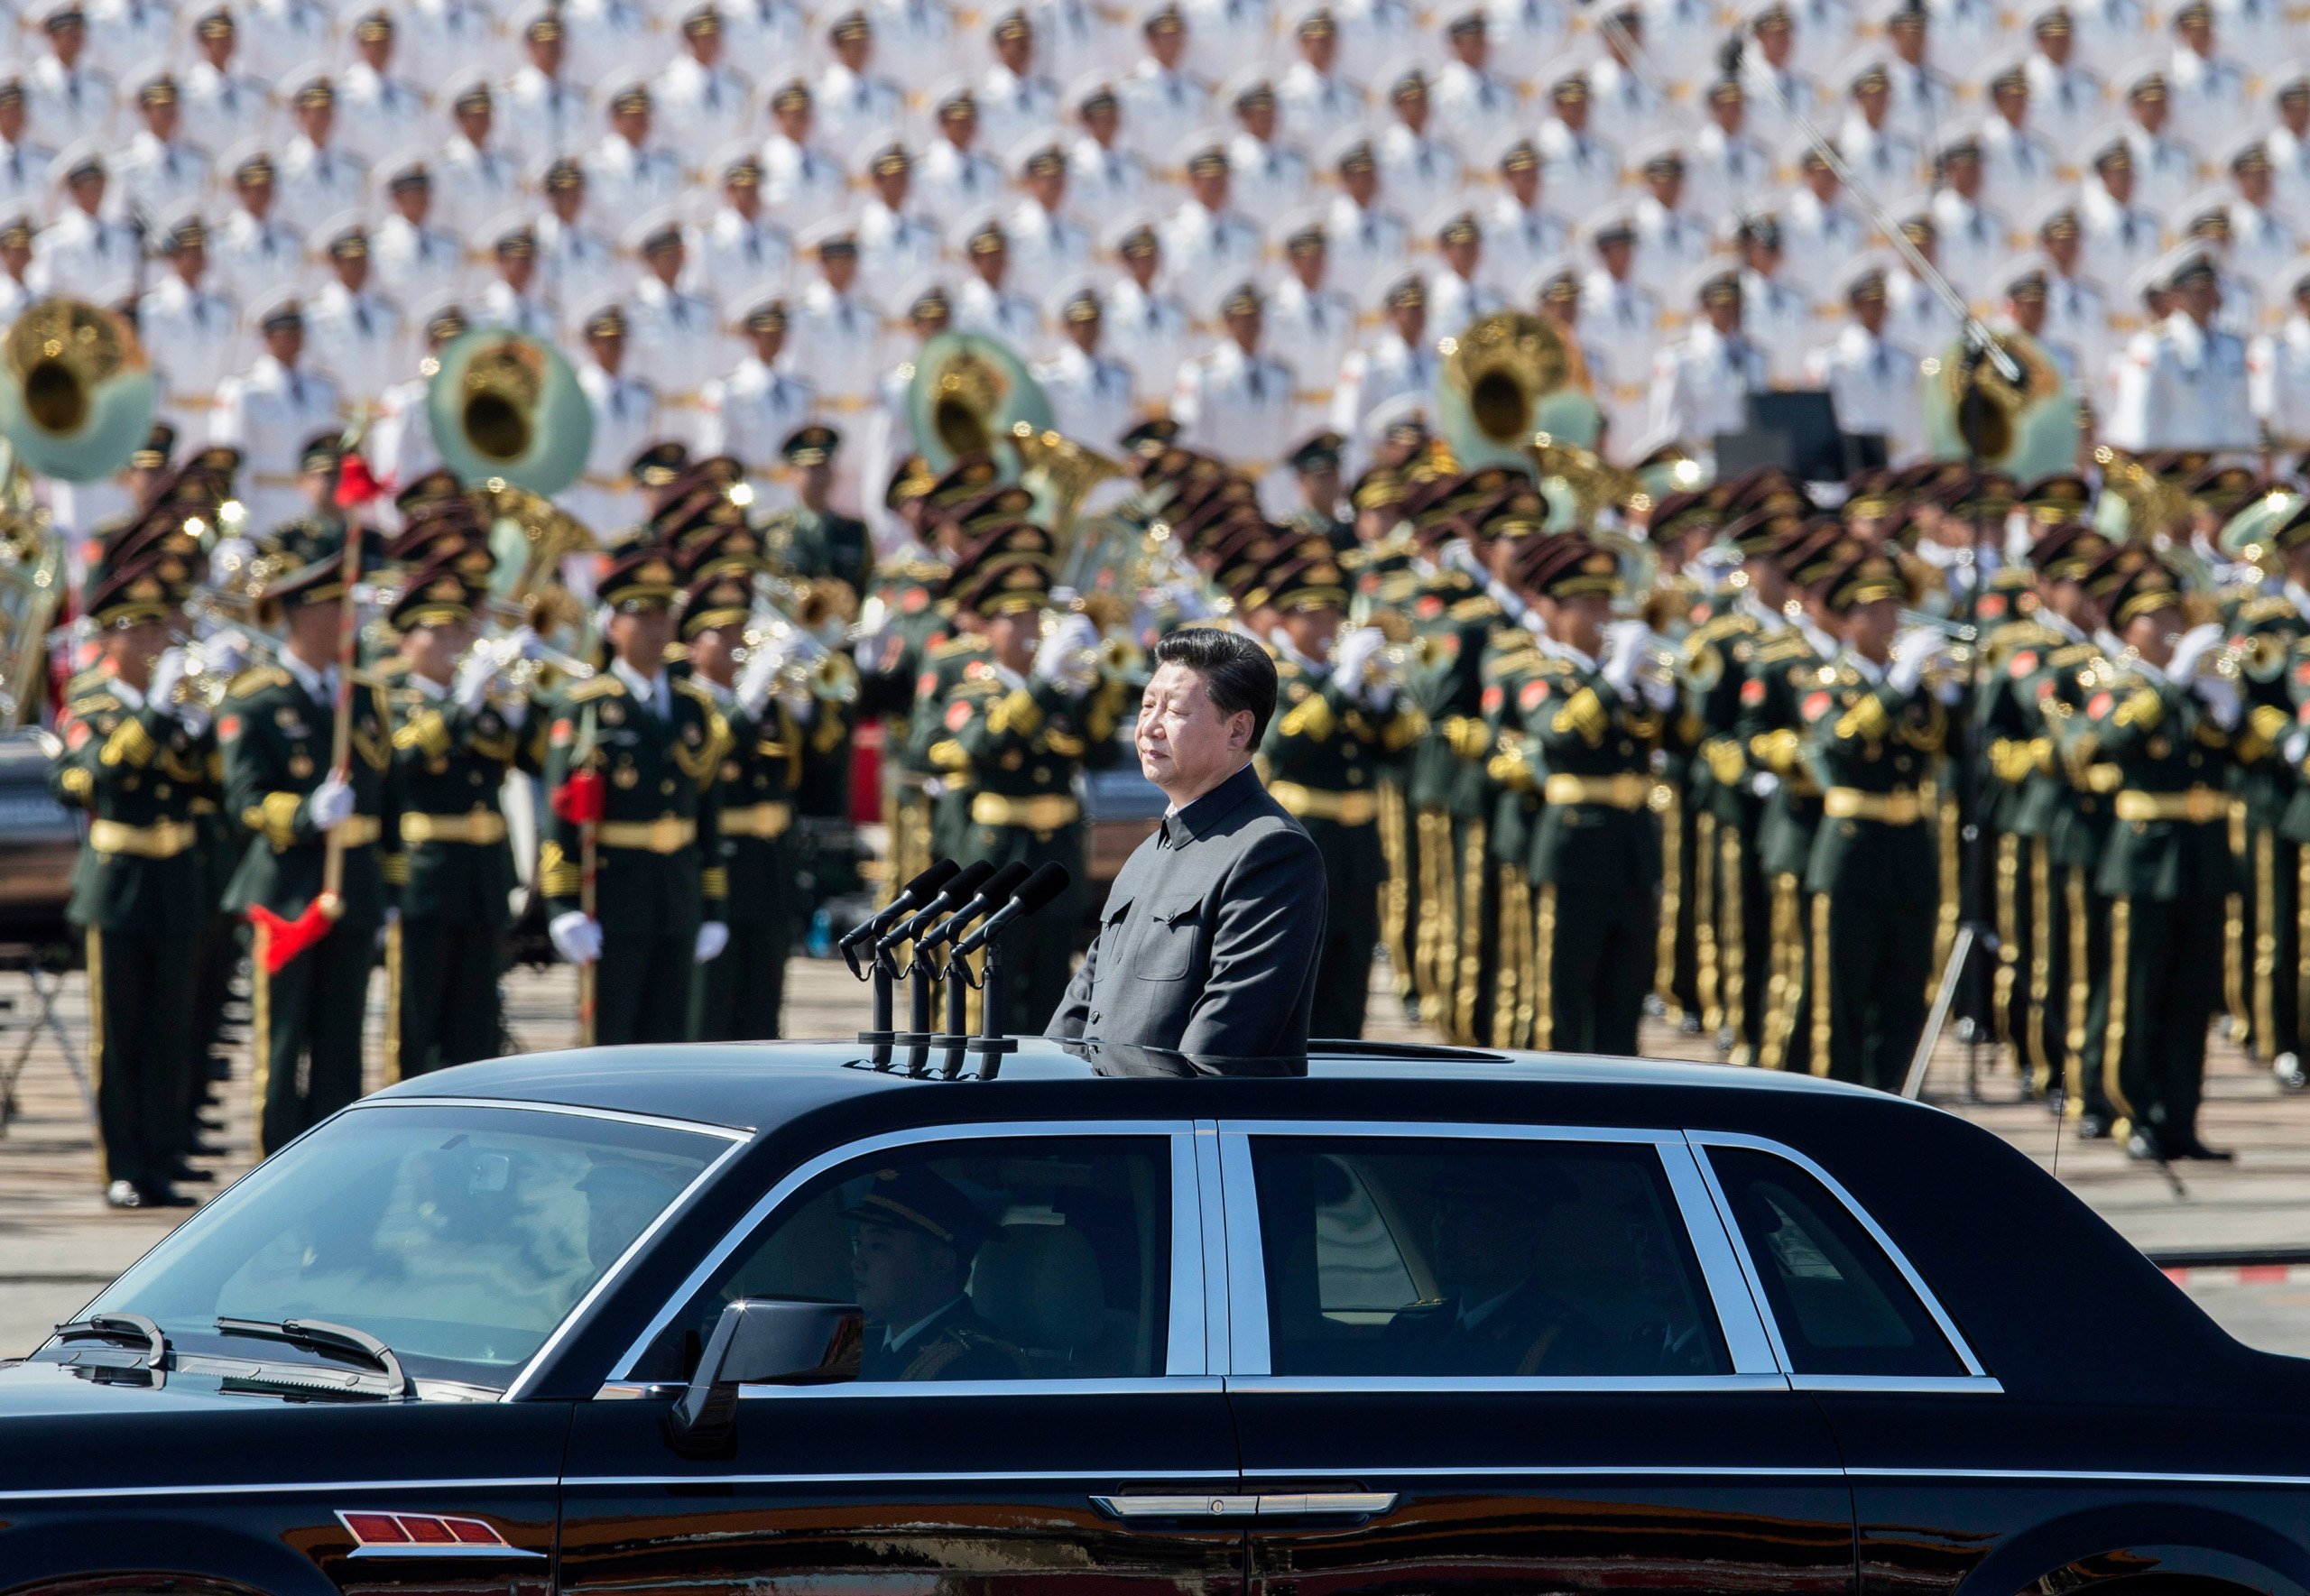 Chinese president and leader of the Communist Party Xi Jinping rides in an open top car in front of Tiananmen Square and the Forbidden City during a military parade in Beijing, on Sept. 3, 2015.